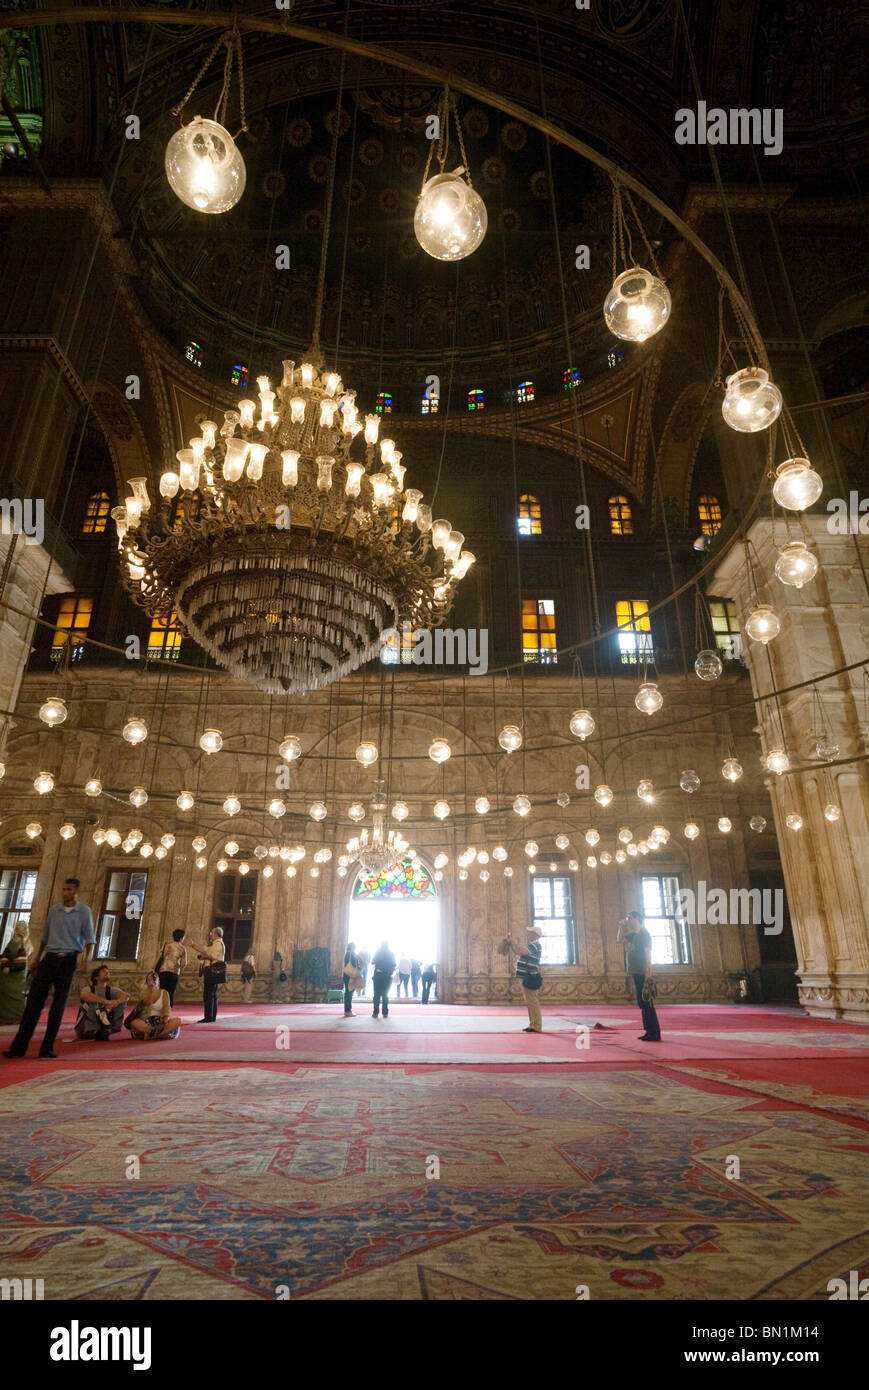 An atmospheric view inside the Mosque of Muhammad Ali Pasha, The Citadel, Cairo, Egypt - Stock Image